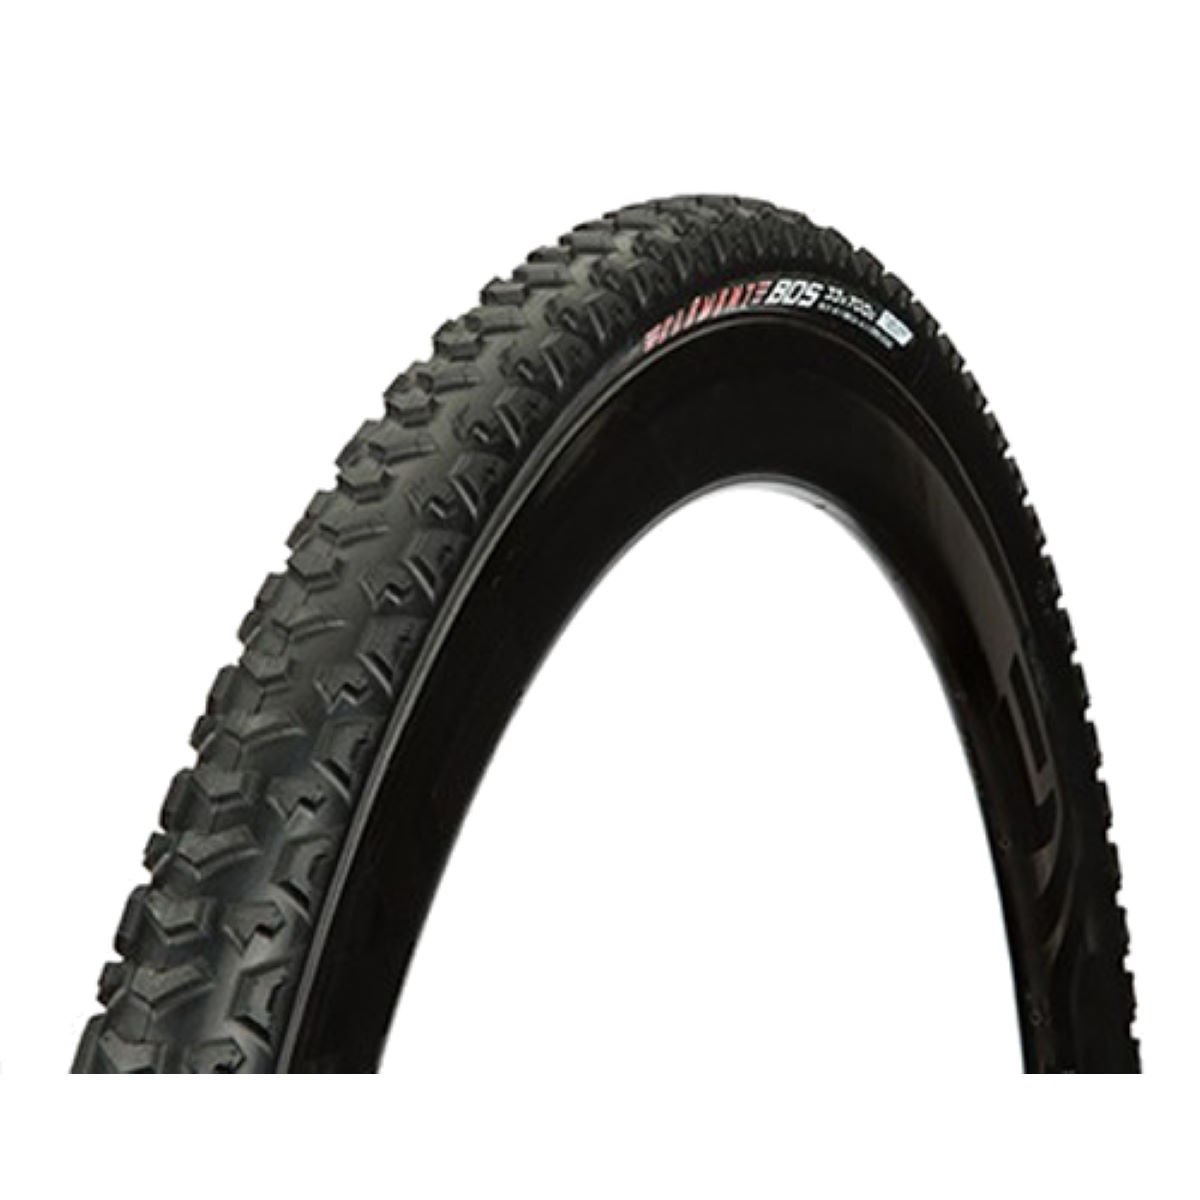 Pneu Clement BOS Tubeless (souple, cyclo-cross) - 700 x 33c Noir Pneus cyclo-cross